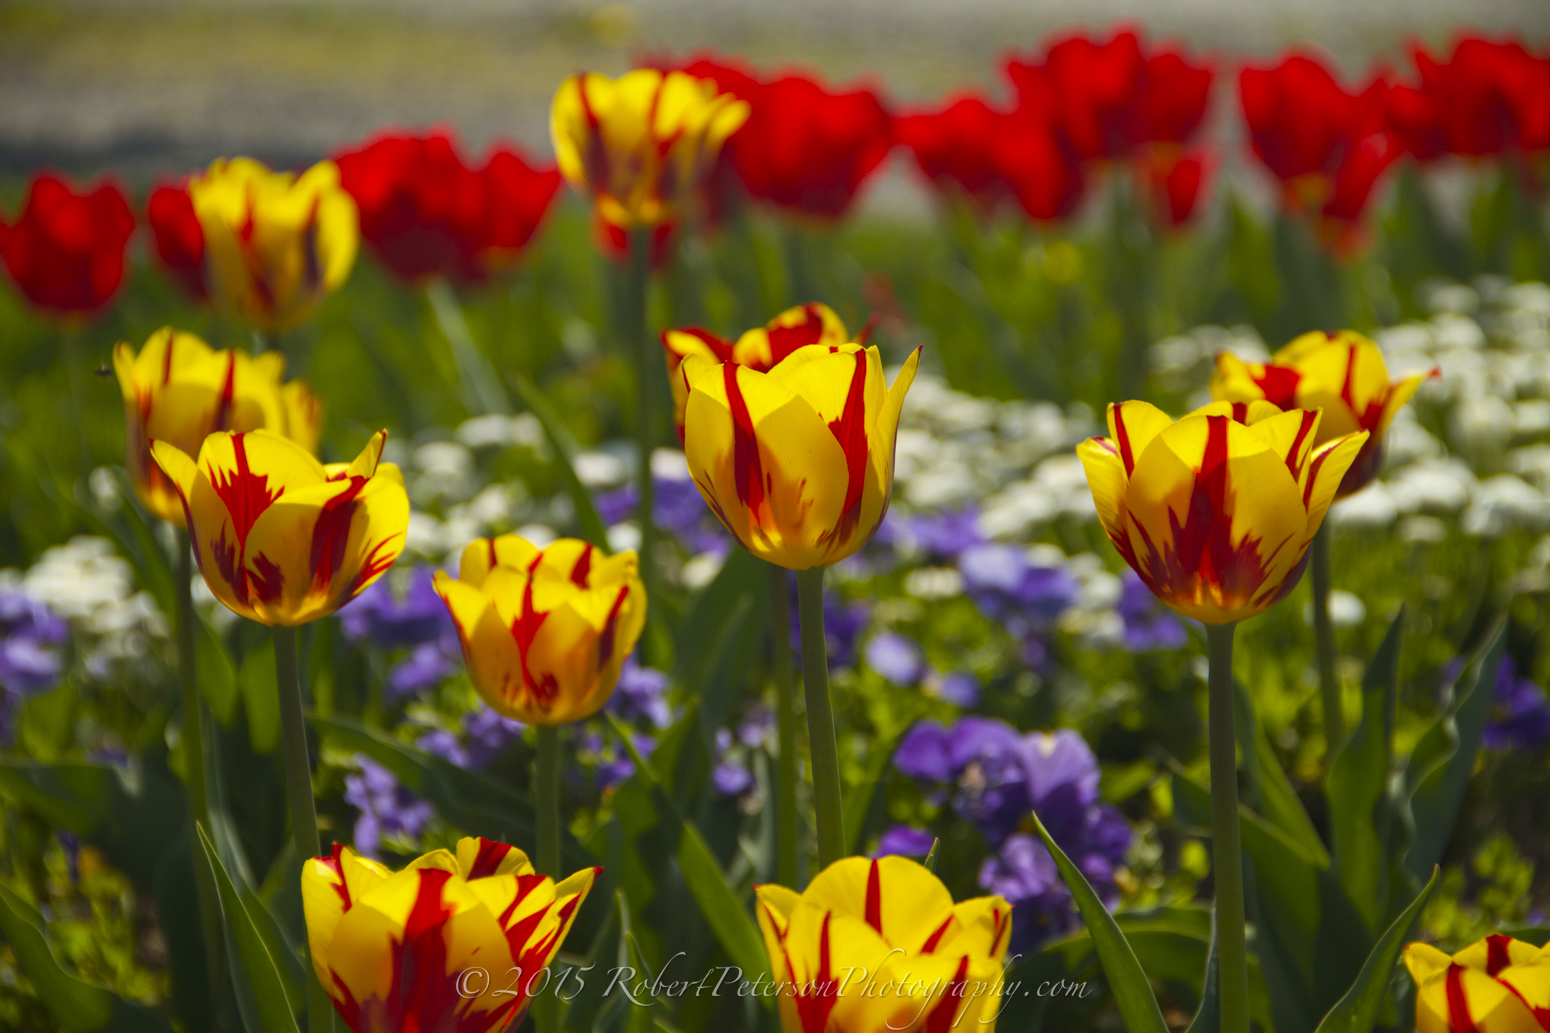 2015-04-24 Sarnen Tulips Robert Peterson Photography-76 1550pxRPP